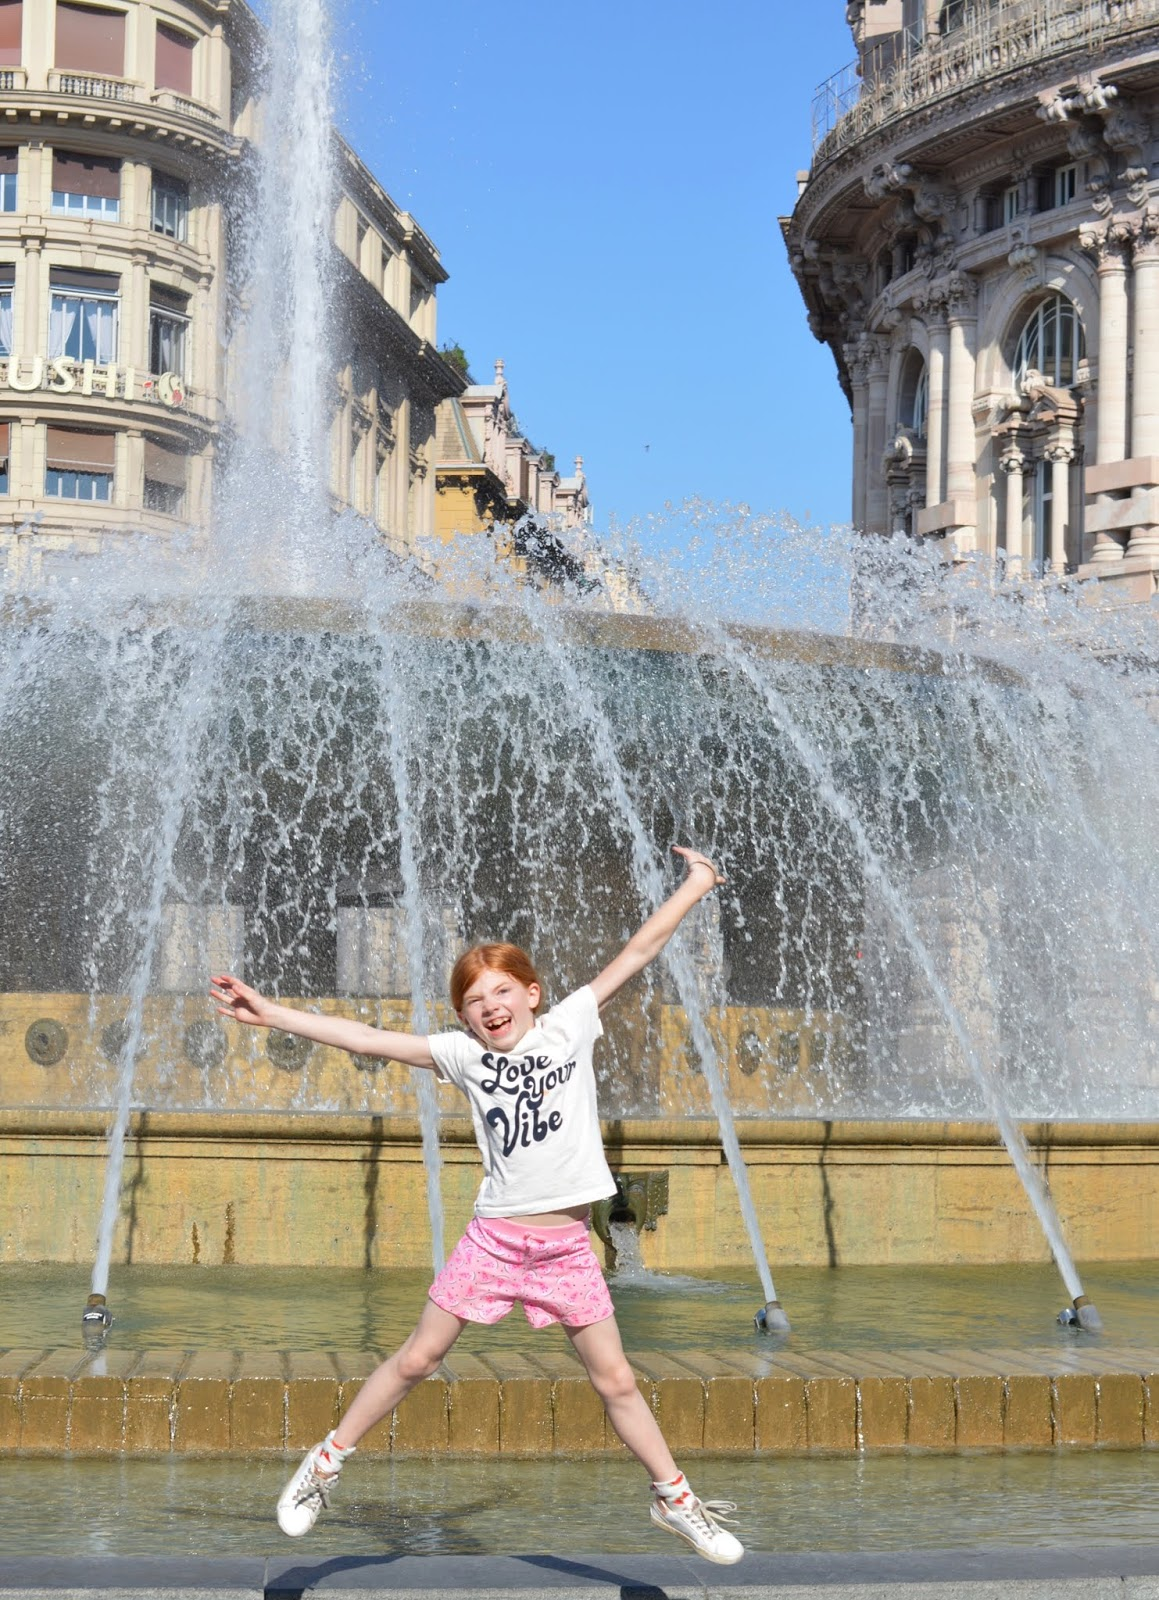 How to spend a weekend in Genoa with kids - main square fountains